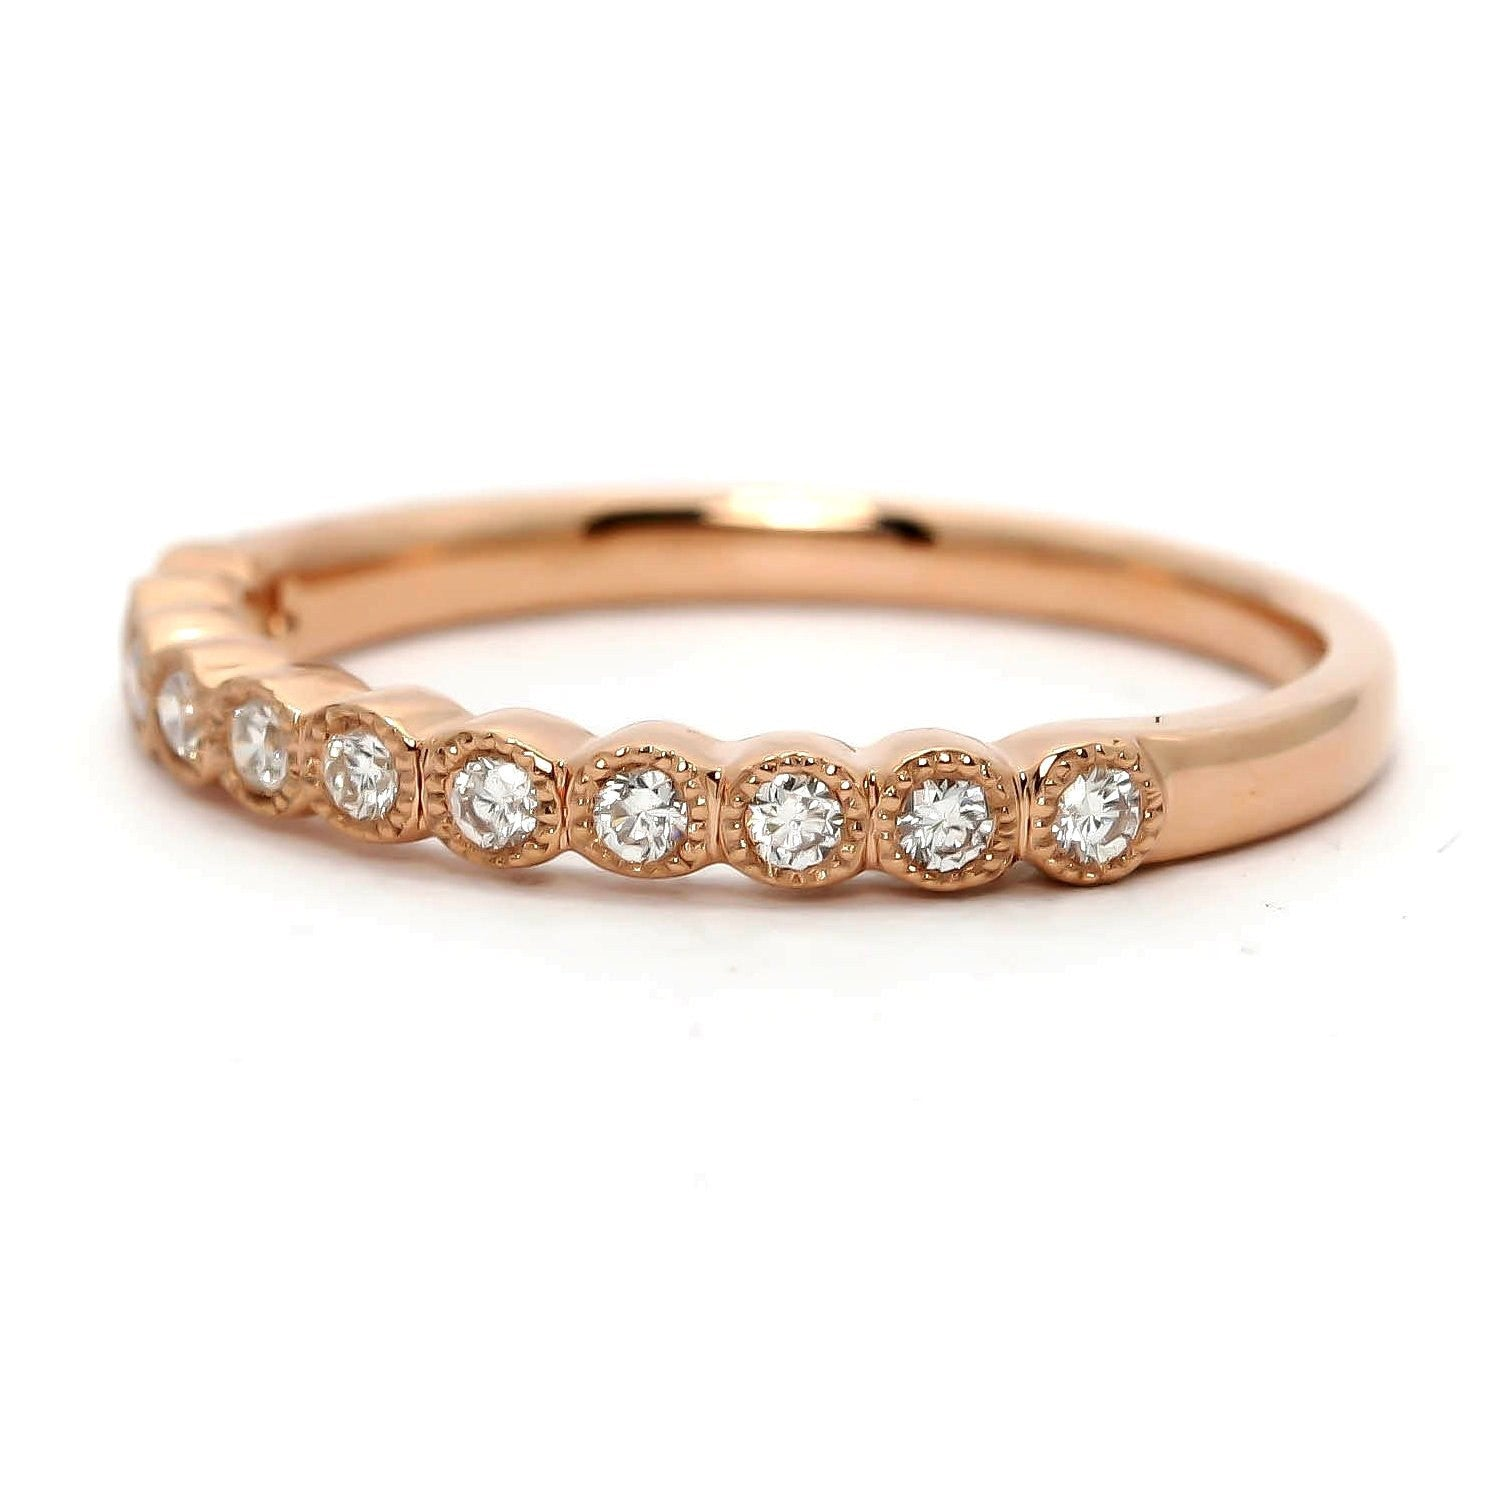 Unique Diamond Wedding Band,14k Rose Gold,Yellow Gold,18k Gold, Platinum, Available Matching Engagement Ring - 73081WB